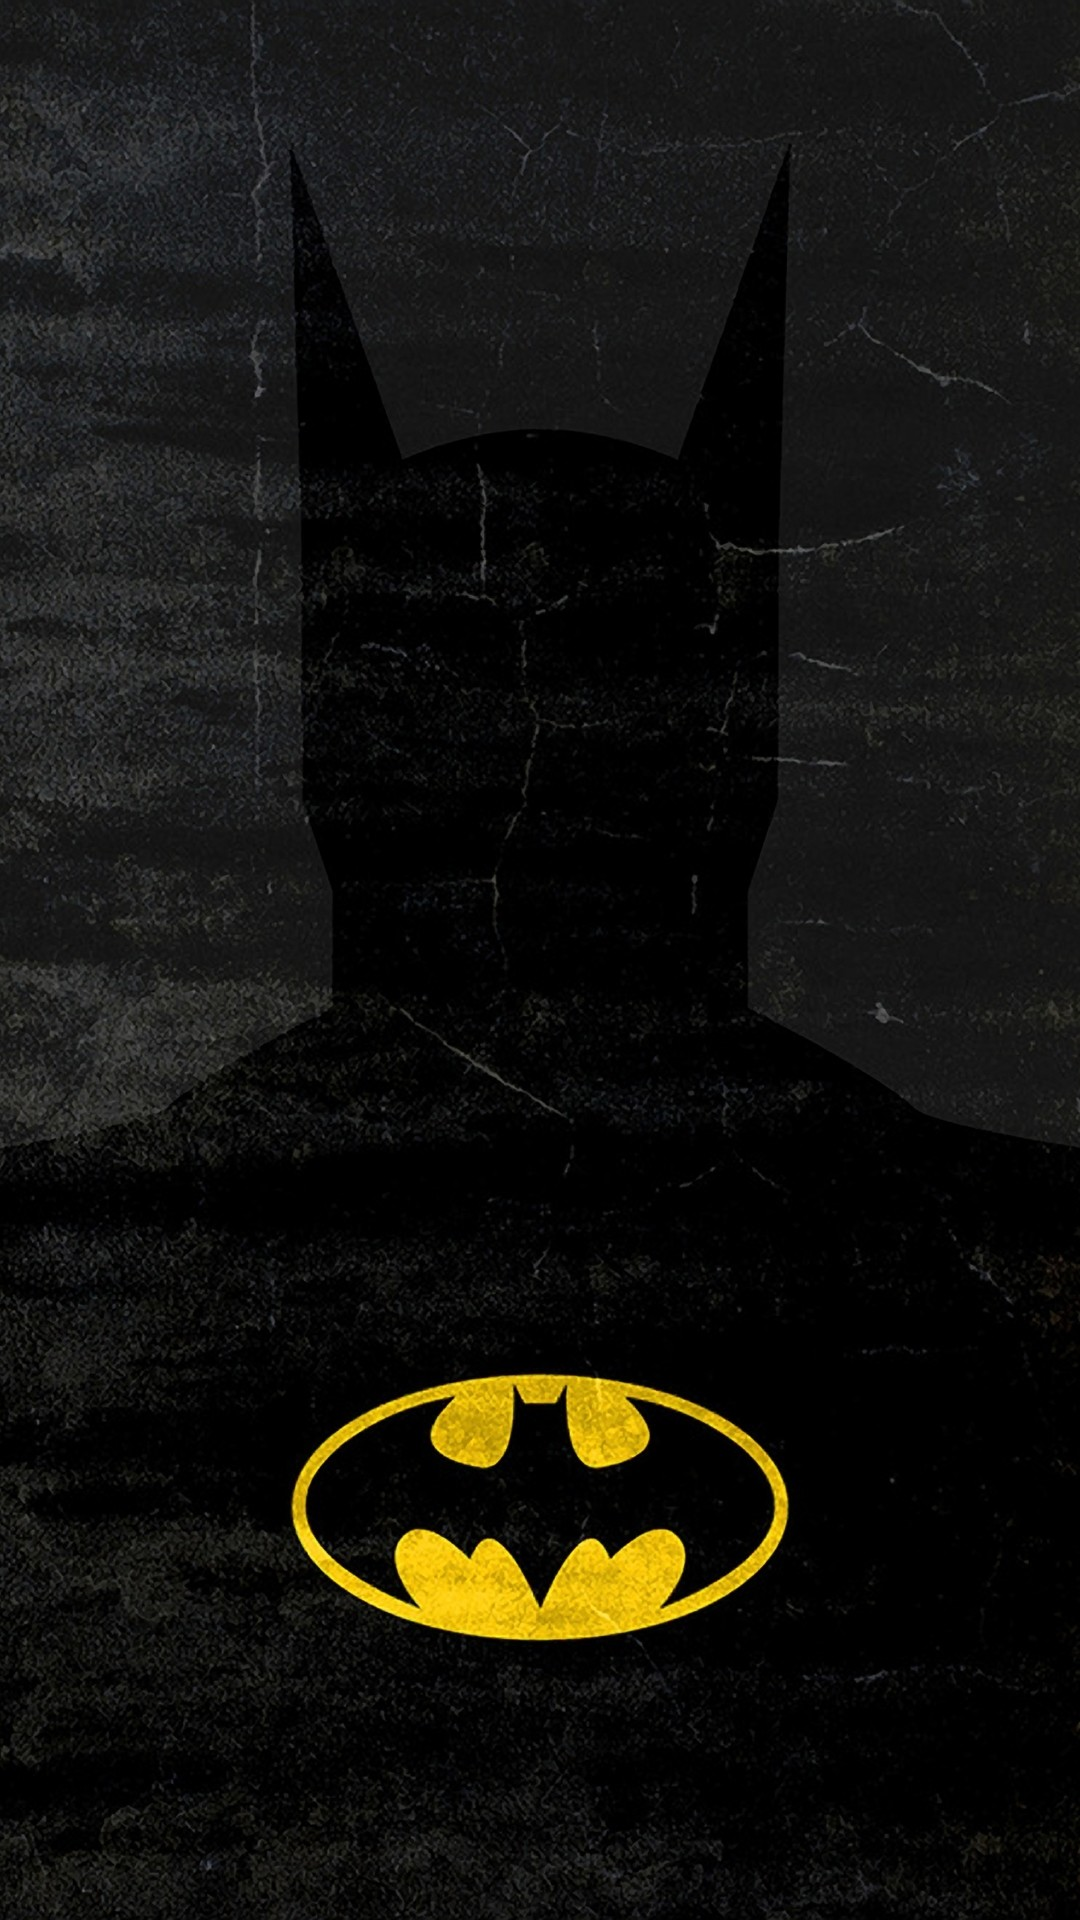 1080x1920 Collection Of Batman Wallpaper Android On HDWallpapers